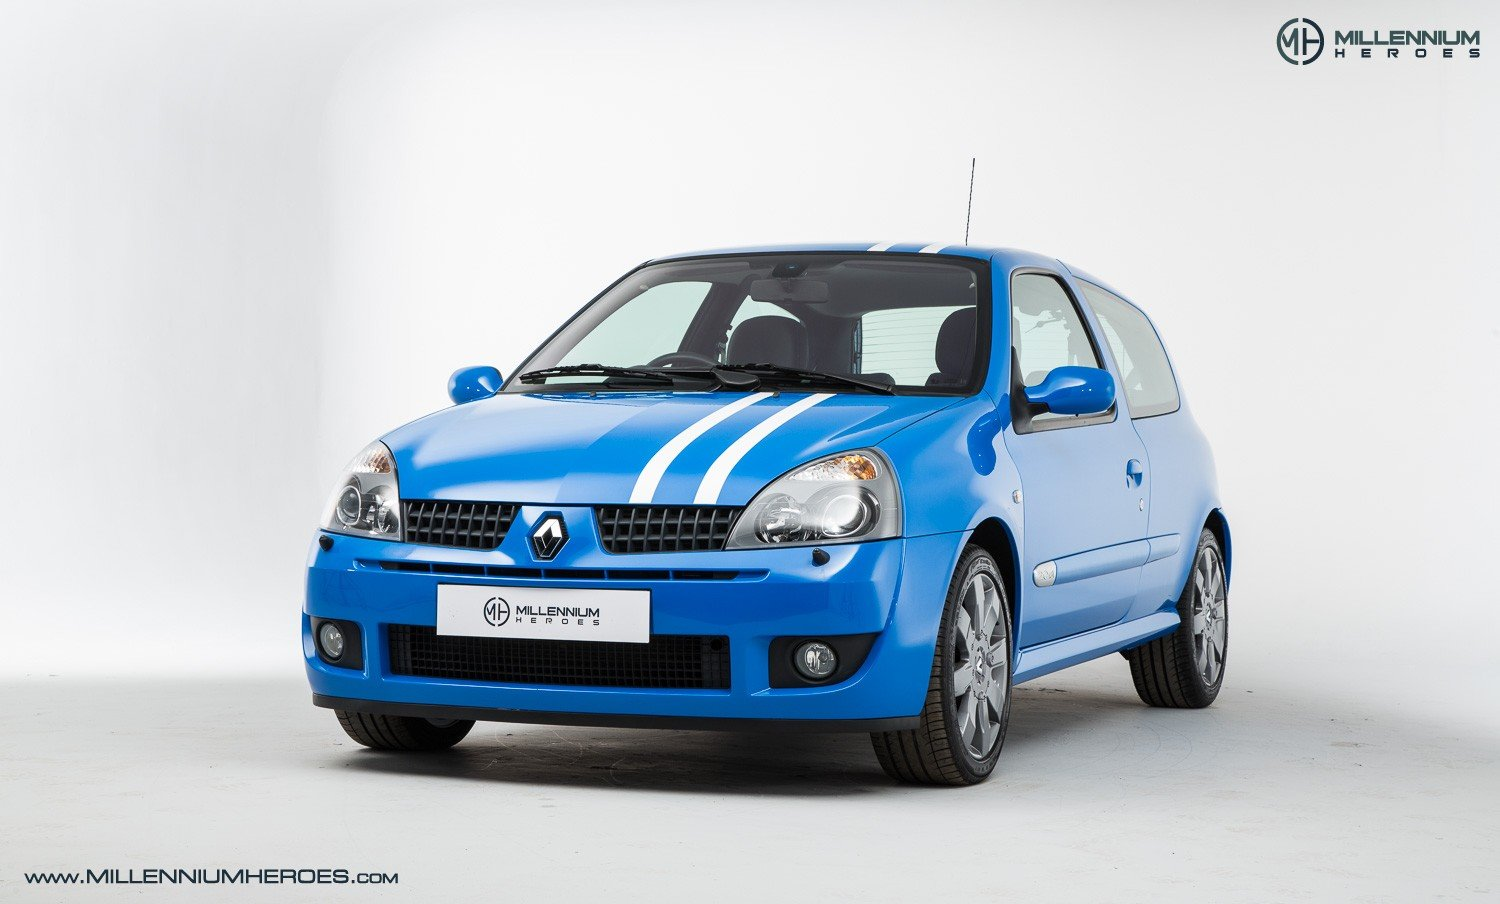 2008 RENAULT MEGANE RENAULTSPORT R26.R For Sale (picture 5 of 7)